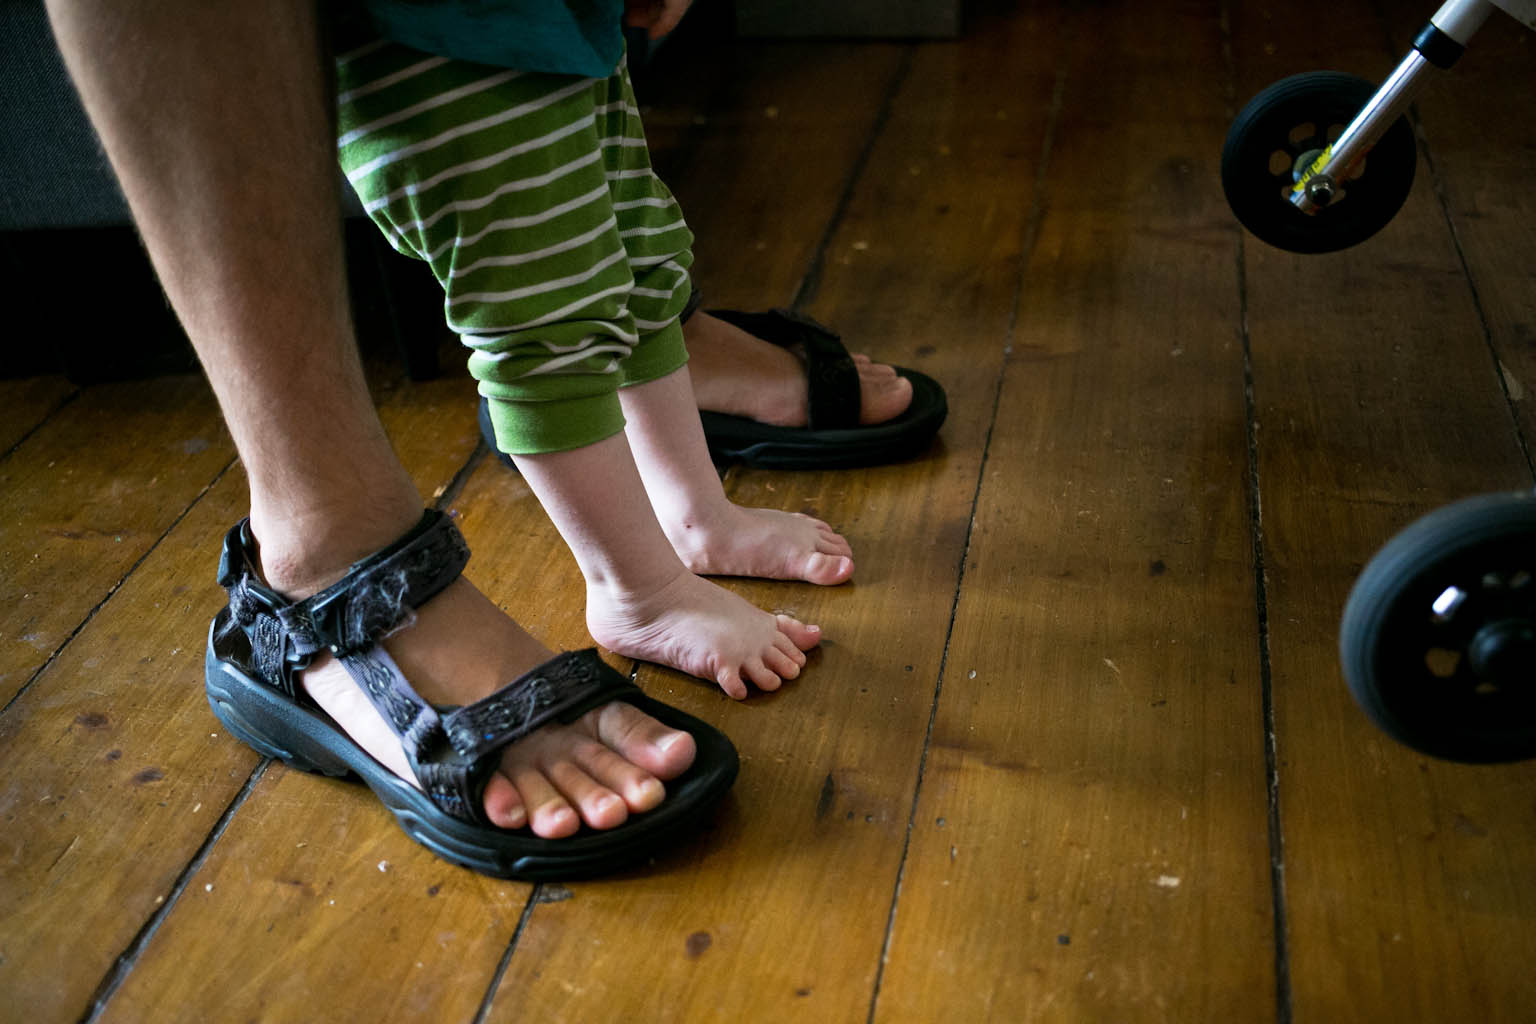 Young boys feet between larger feet in sandles